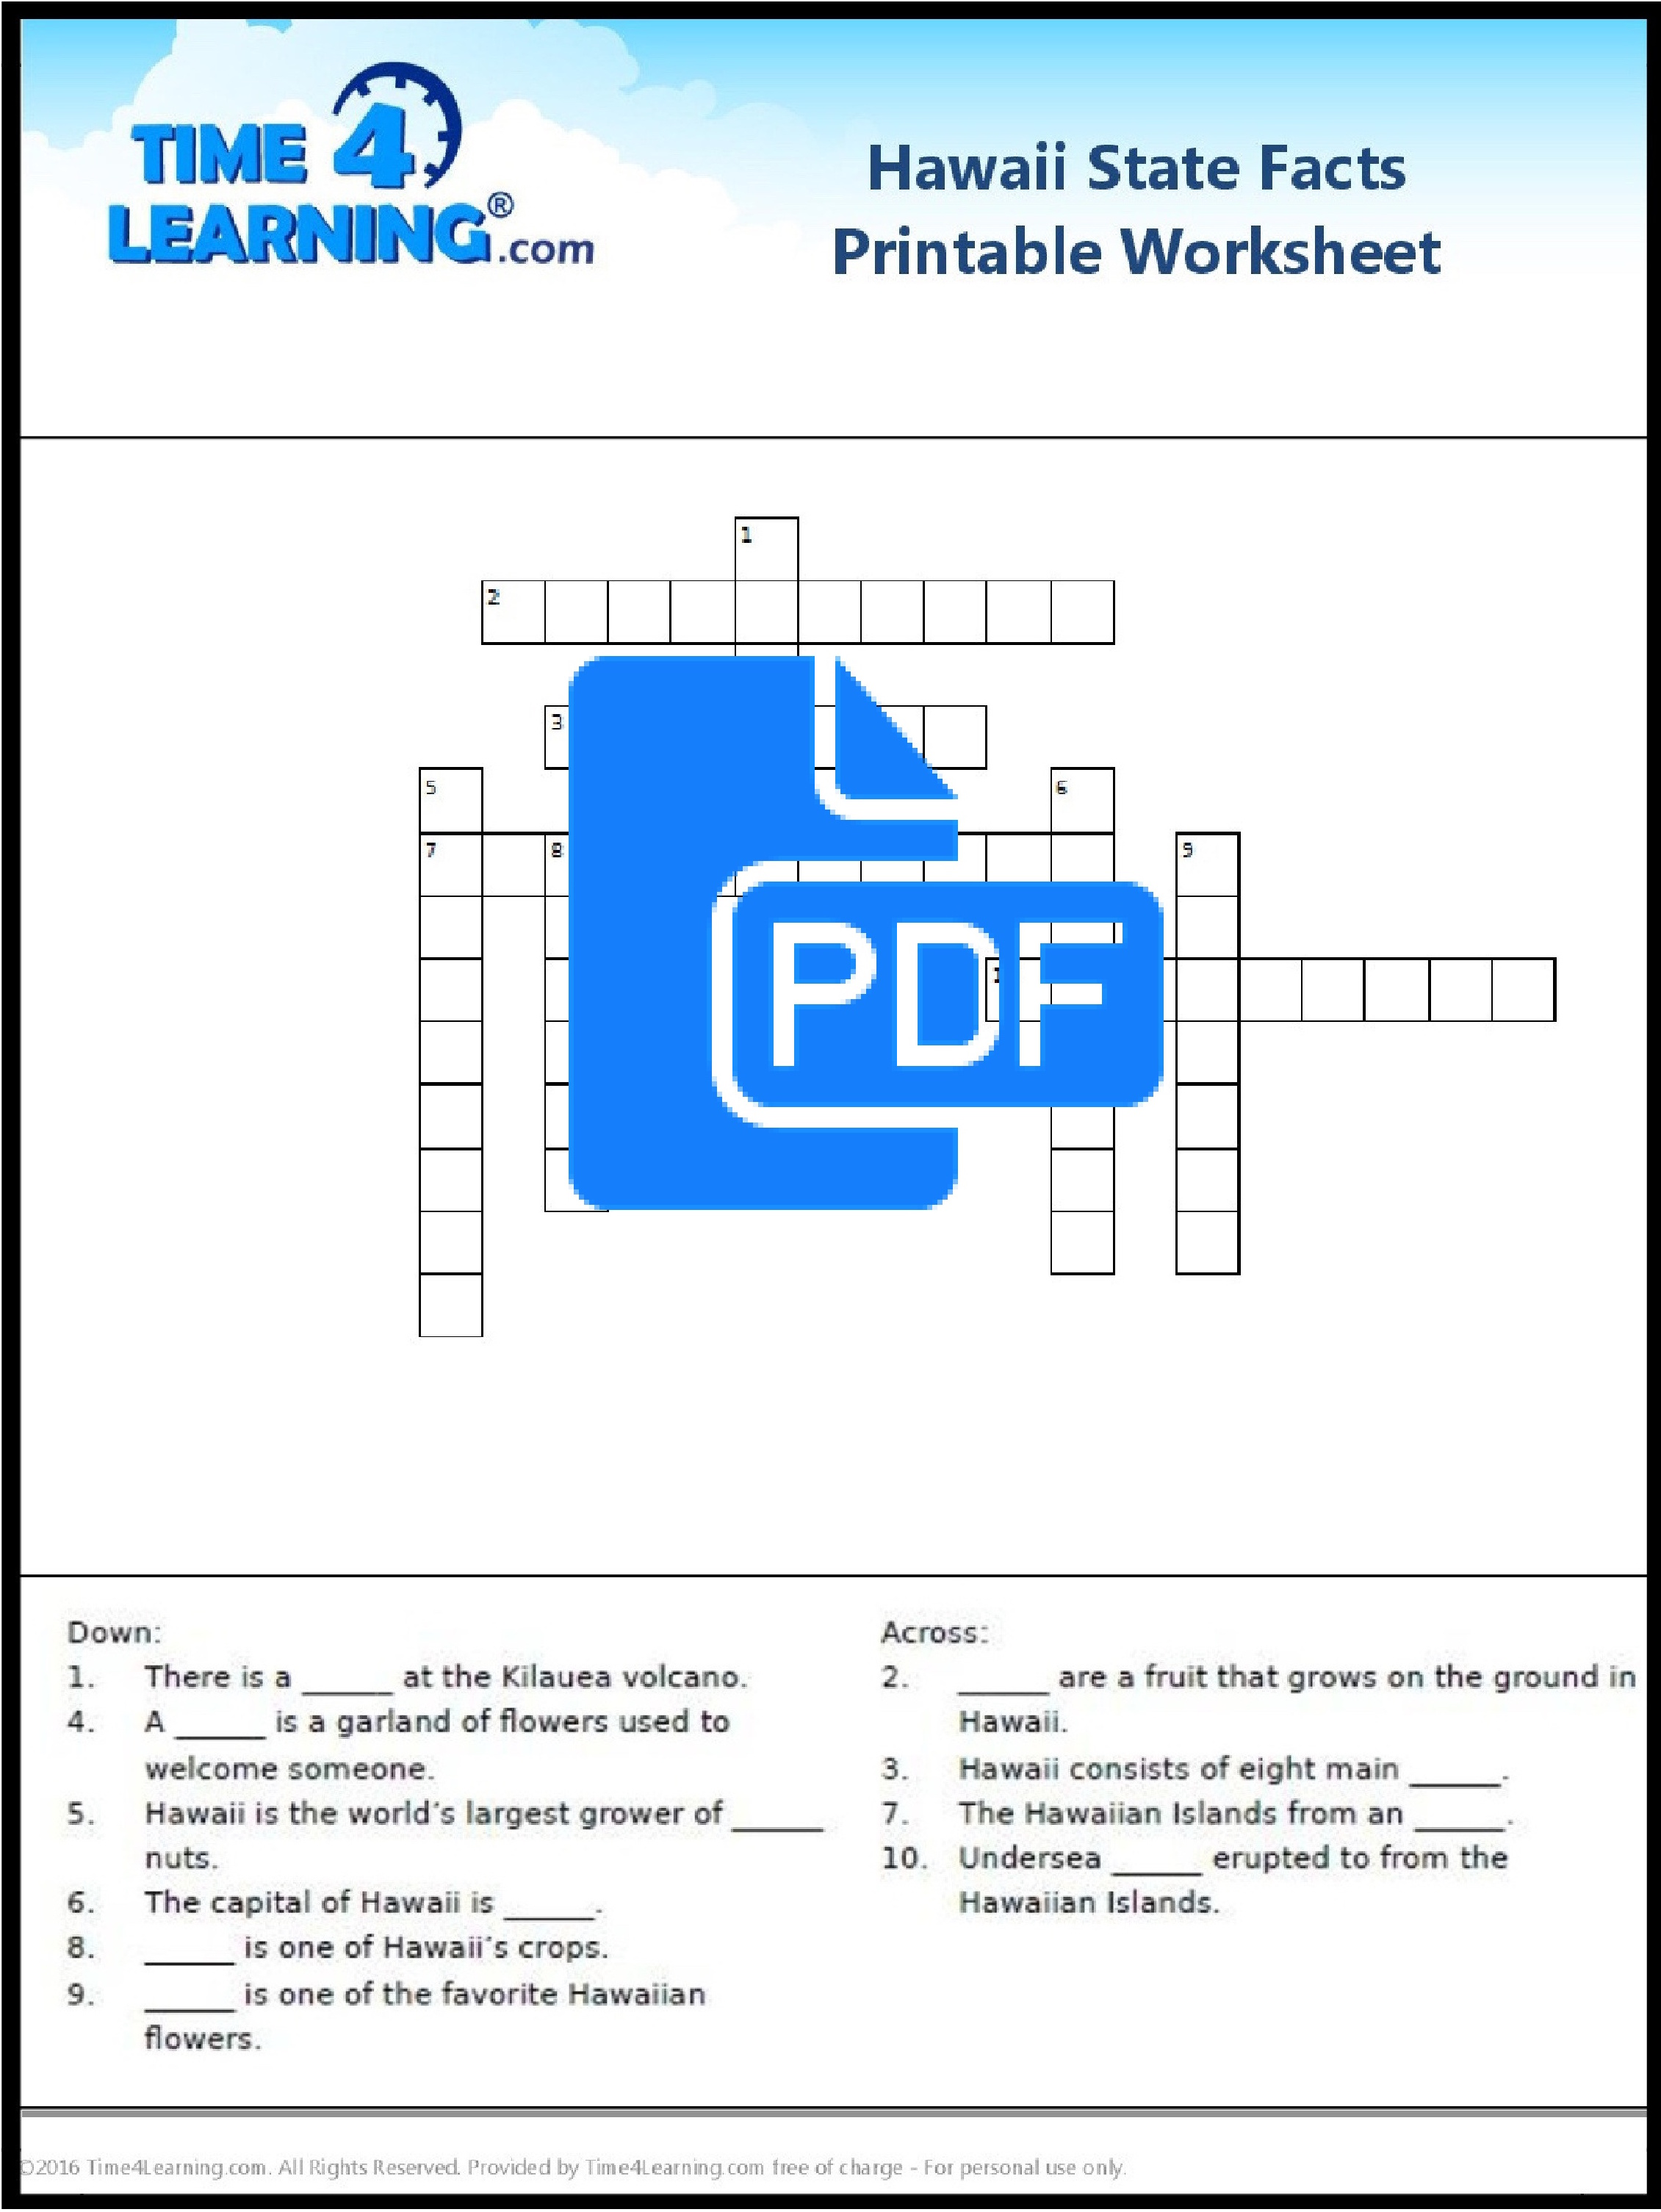 Free Printable Hawaii State Facts Crossword